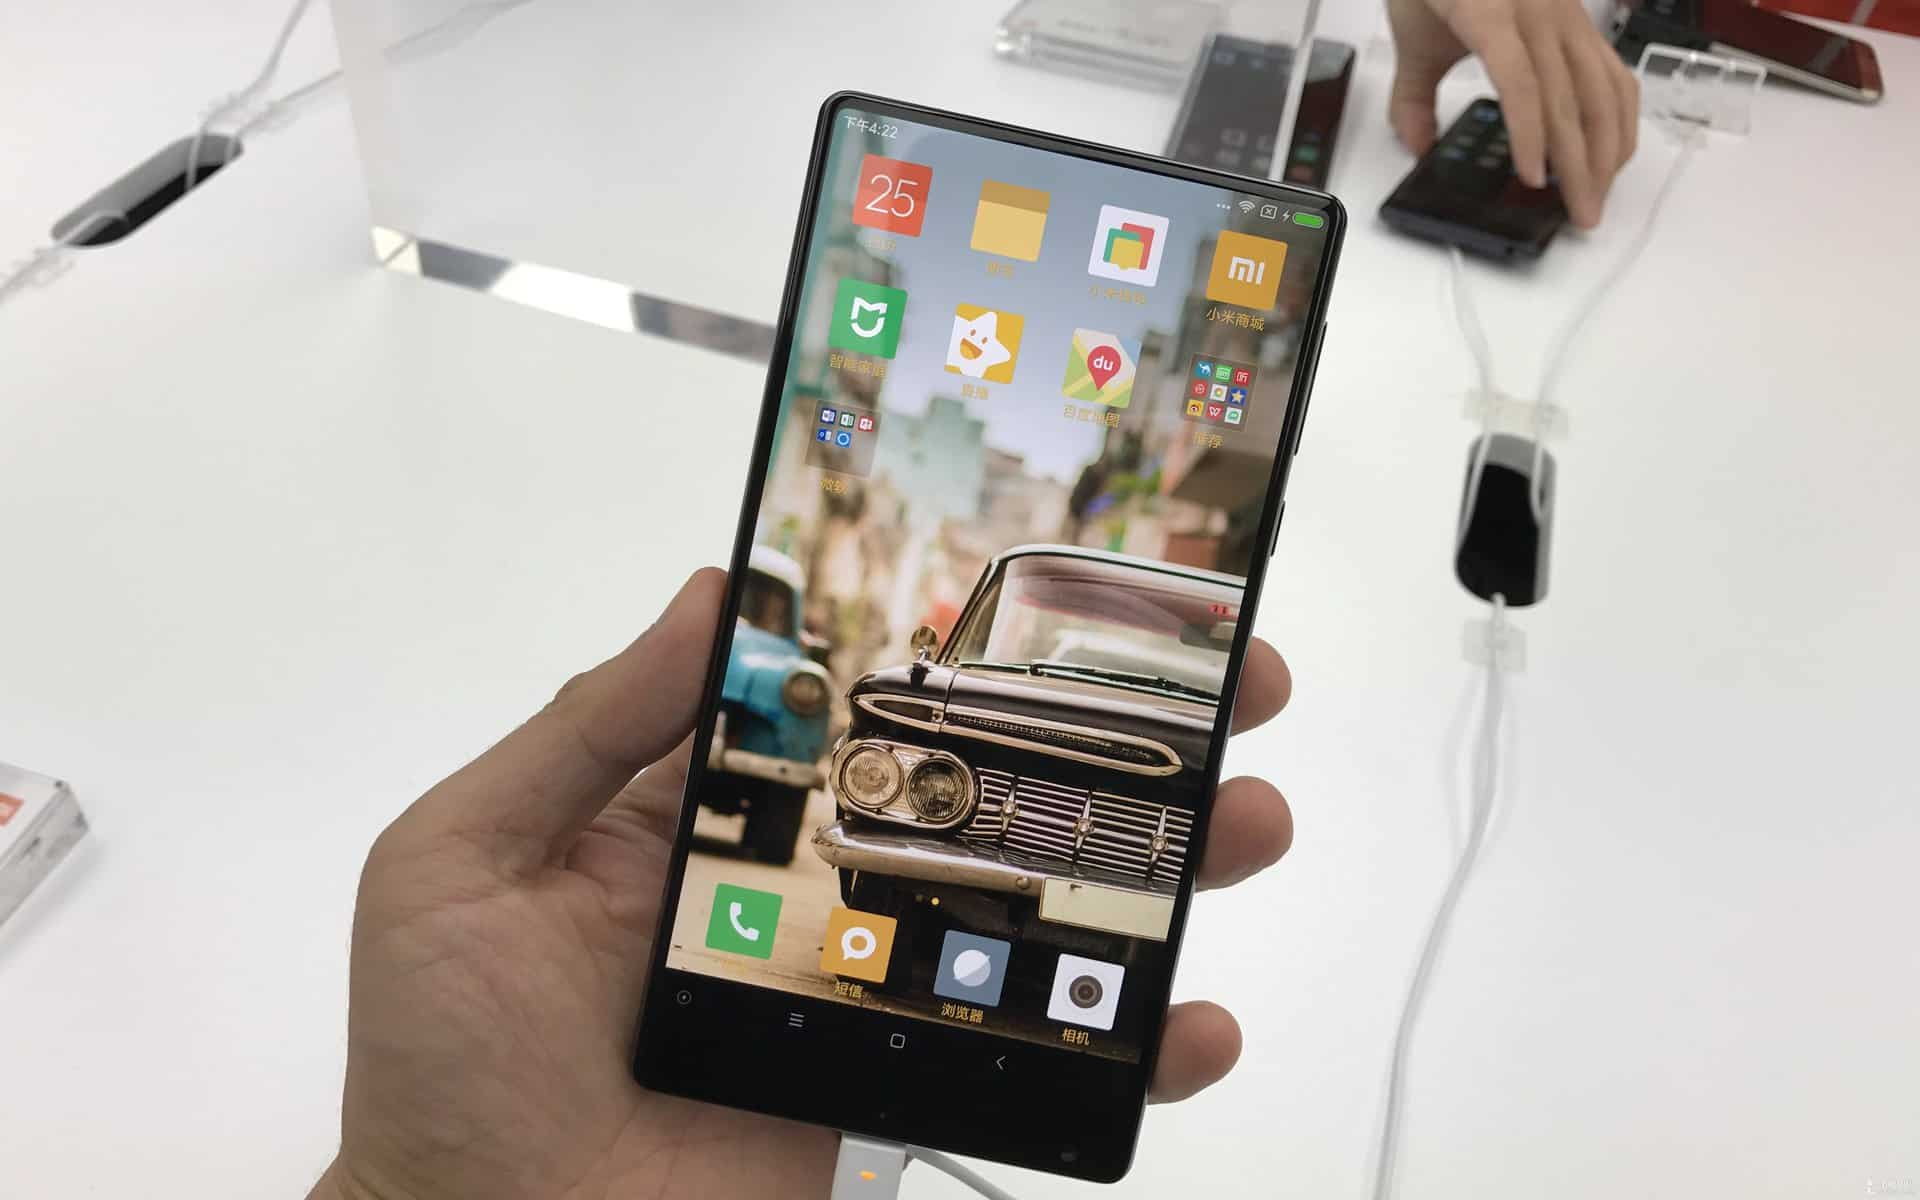 Are Future Smartphones Truly Bezel-less? - 2